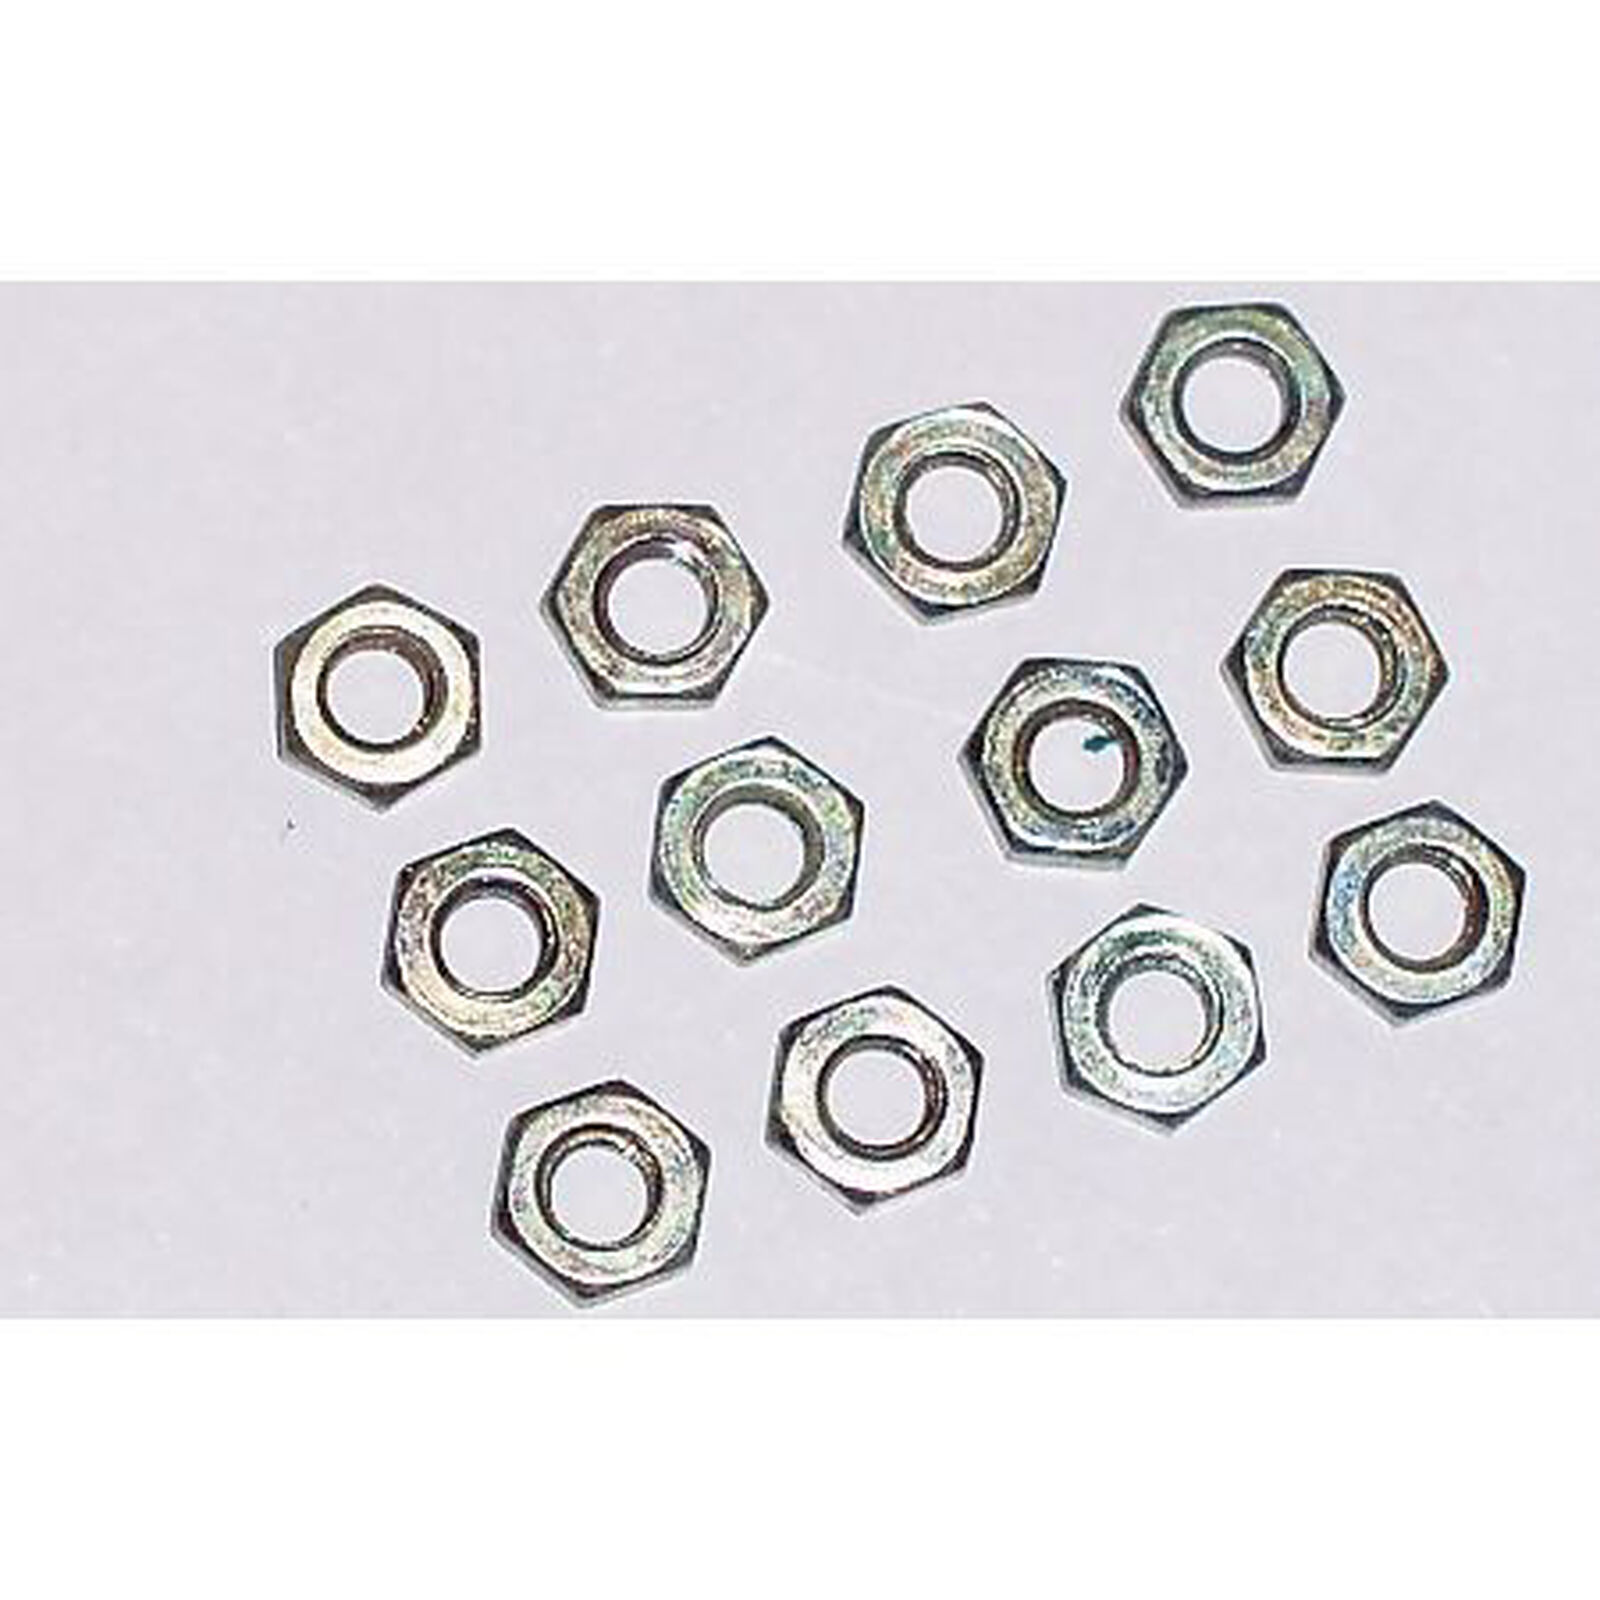 4-40 Threaded Hex Nuts